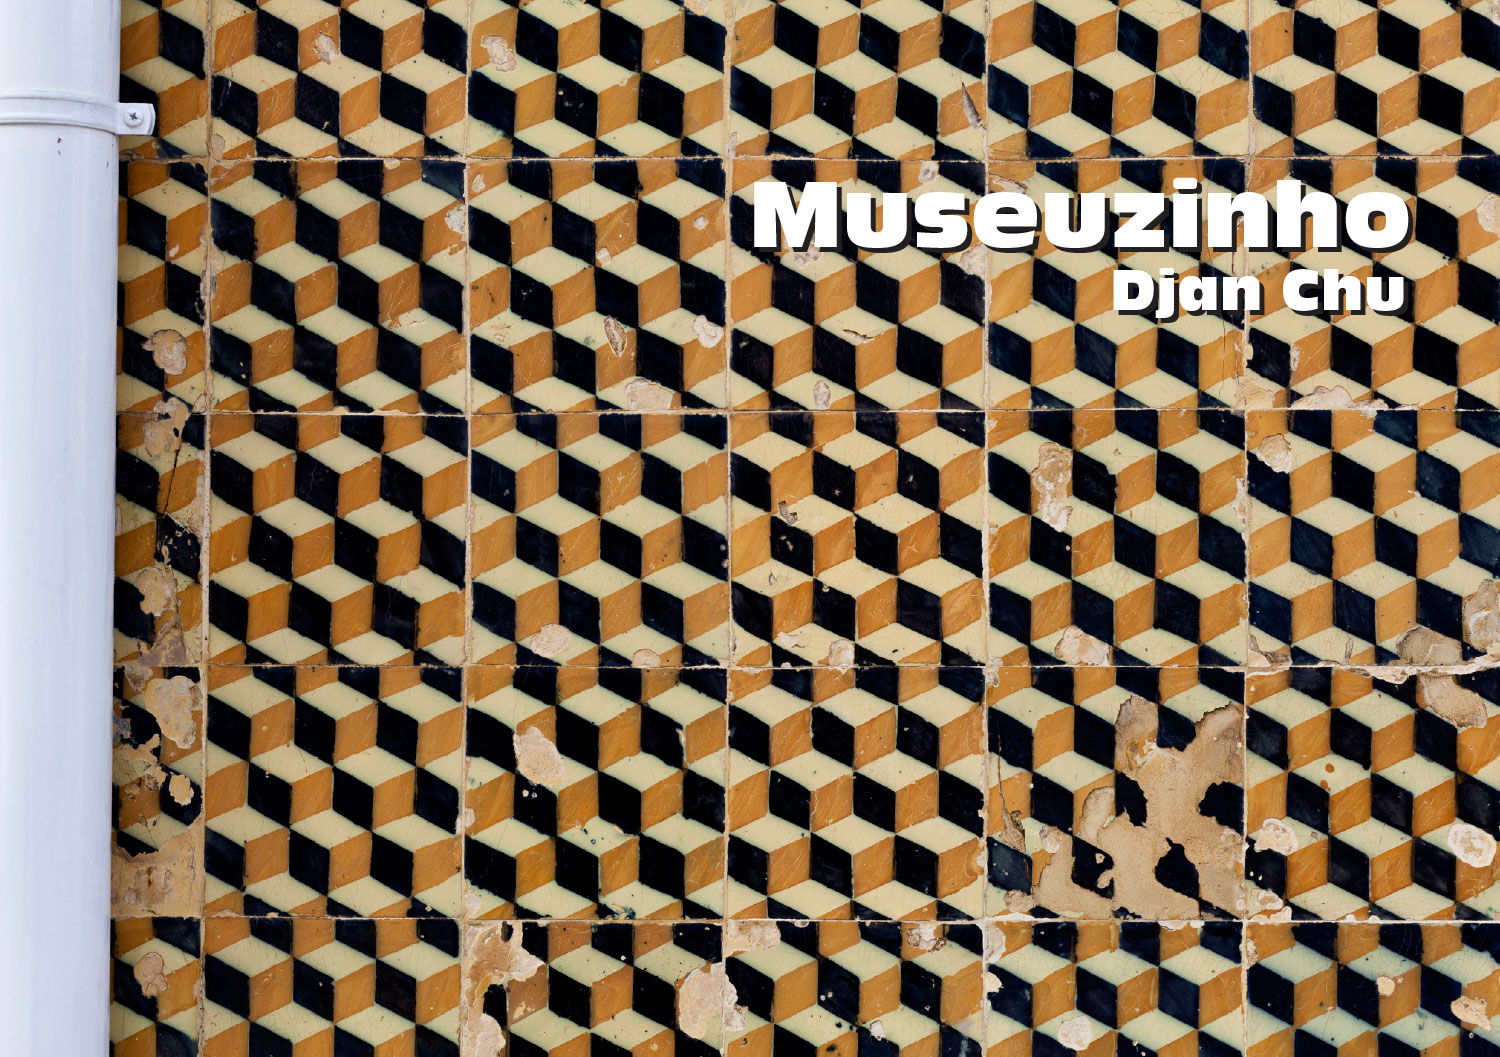 Photo editing and design of the self-published book,  Museuzinho  [Little Museum], with photos by Djan Chu | December, 2015